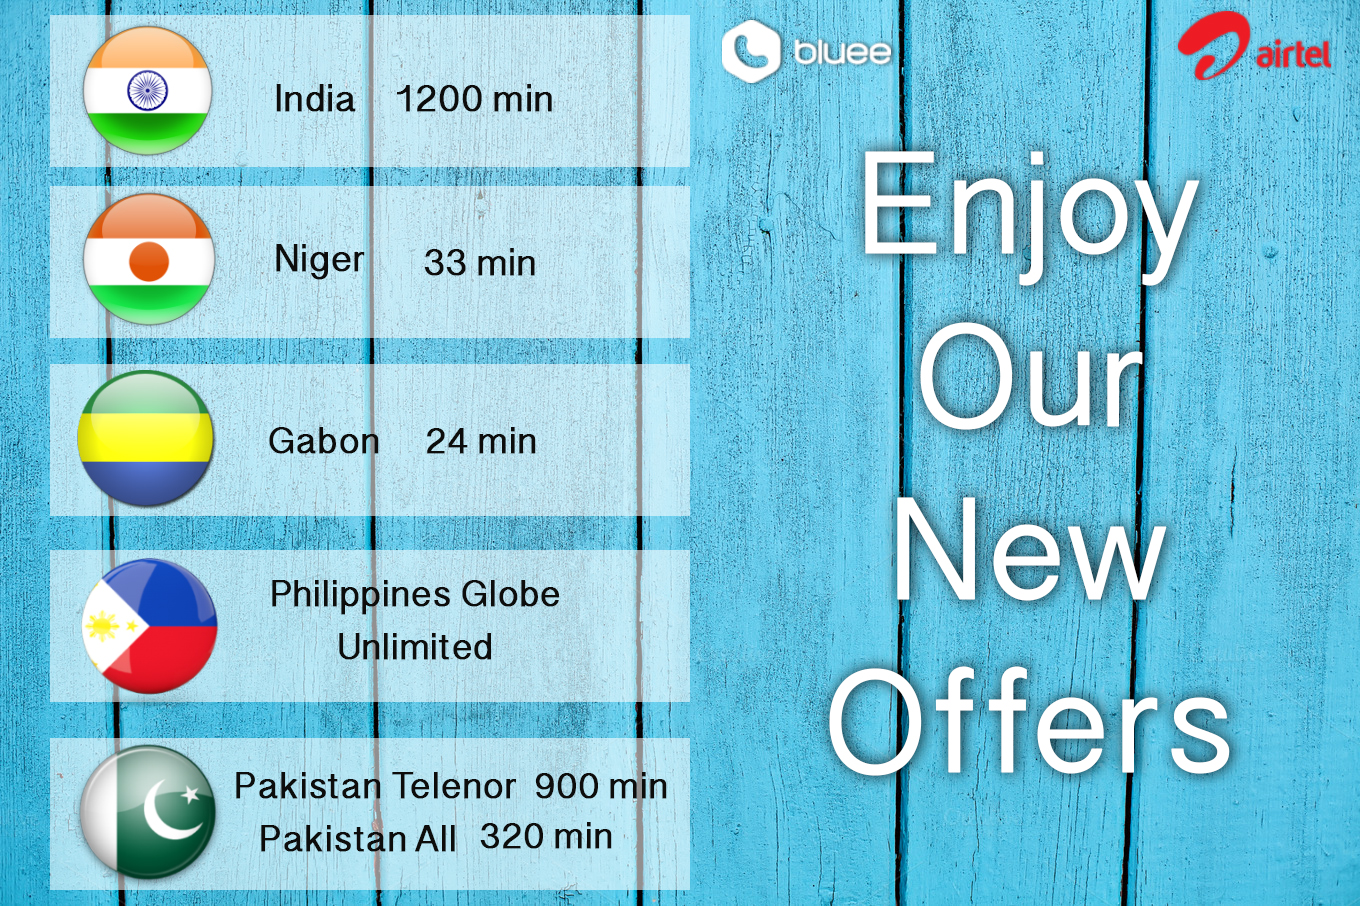 Save on International Calls with Bluee